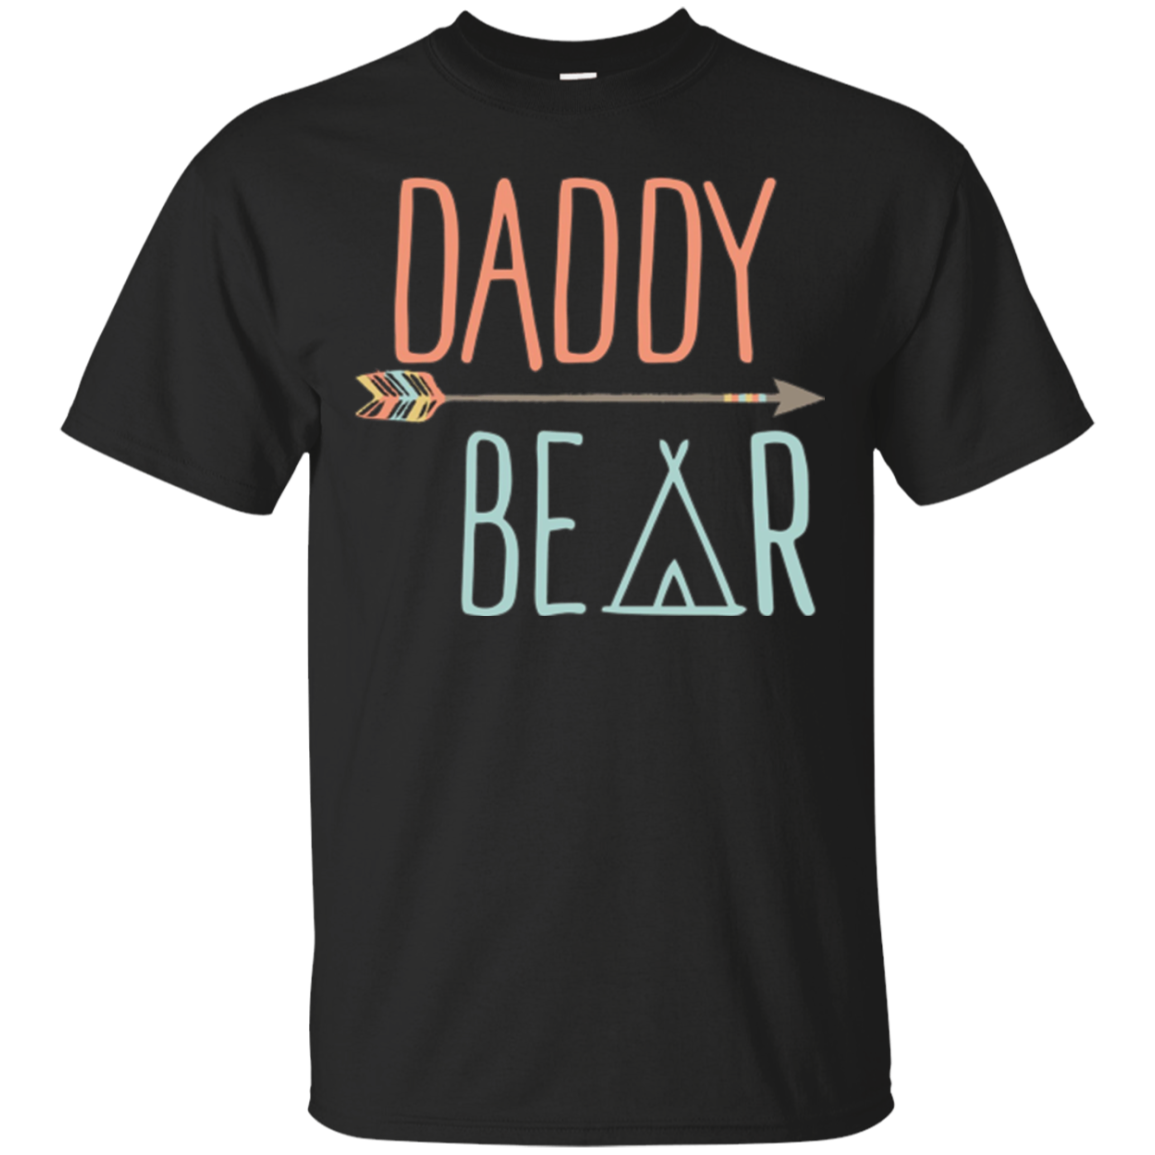 Mens Arrow Tribal Daddy Bear Shirt Father's Day Shirt